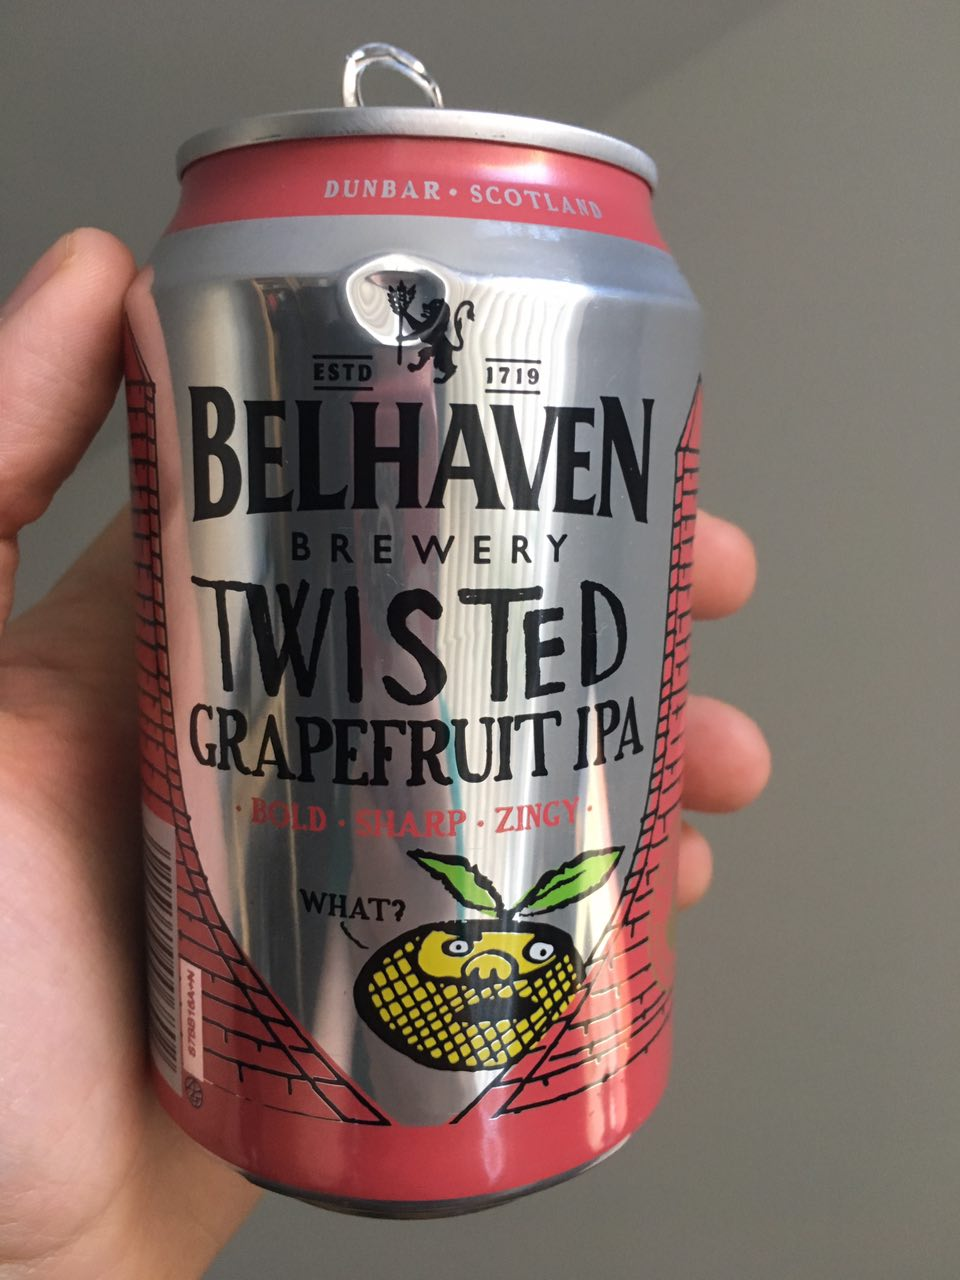 Belhaven Twisted Grapefruit IPA